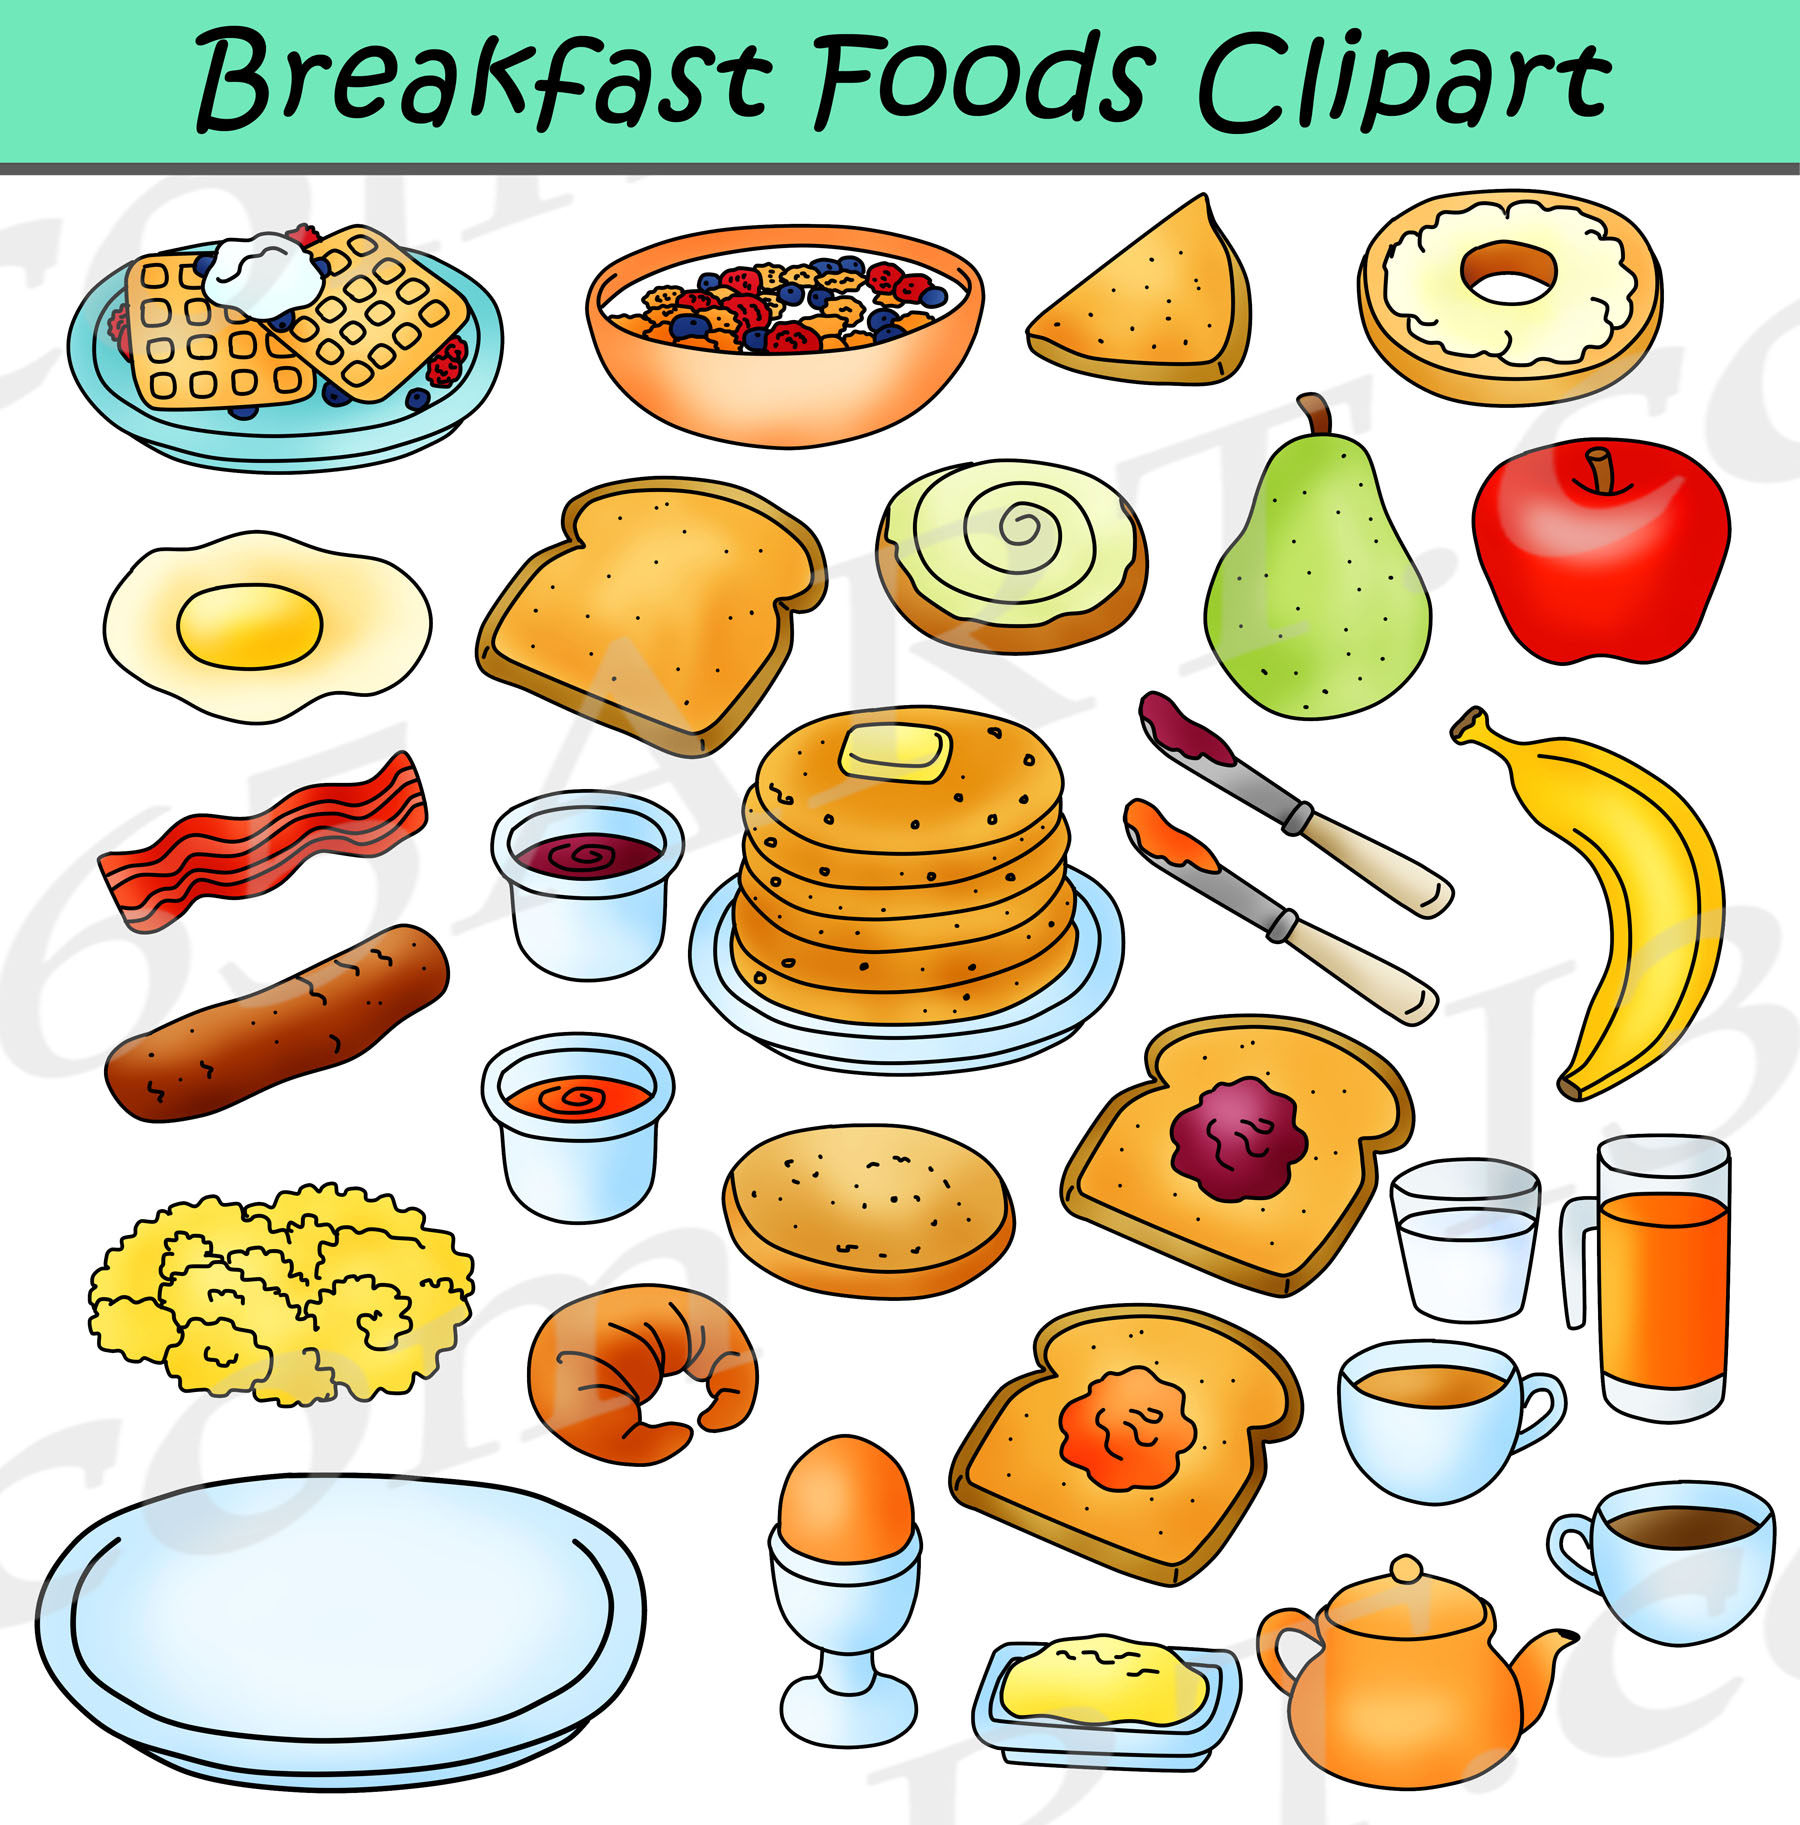 Breakfast clipart svg black and white download Breakfast Foods Clipart Bundle - Breakfast Clipart Graphics svg black and white download